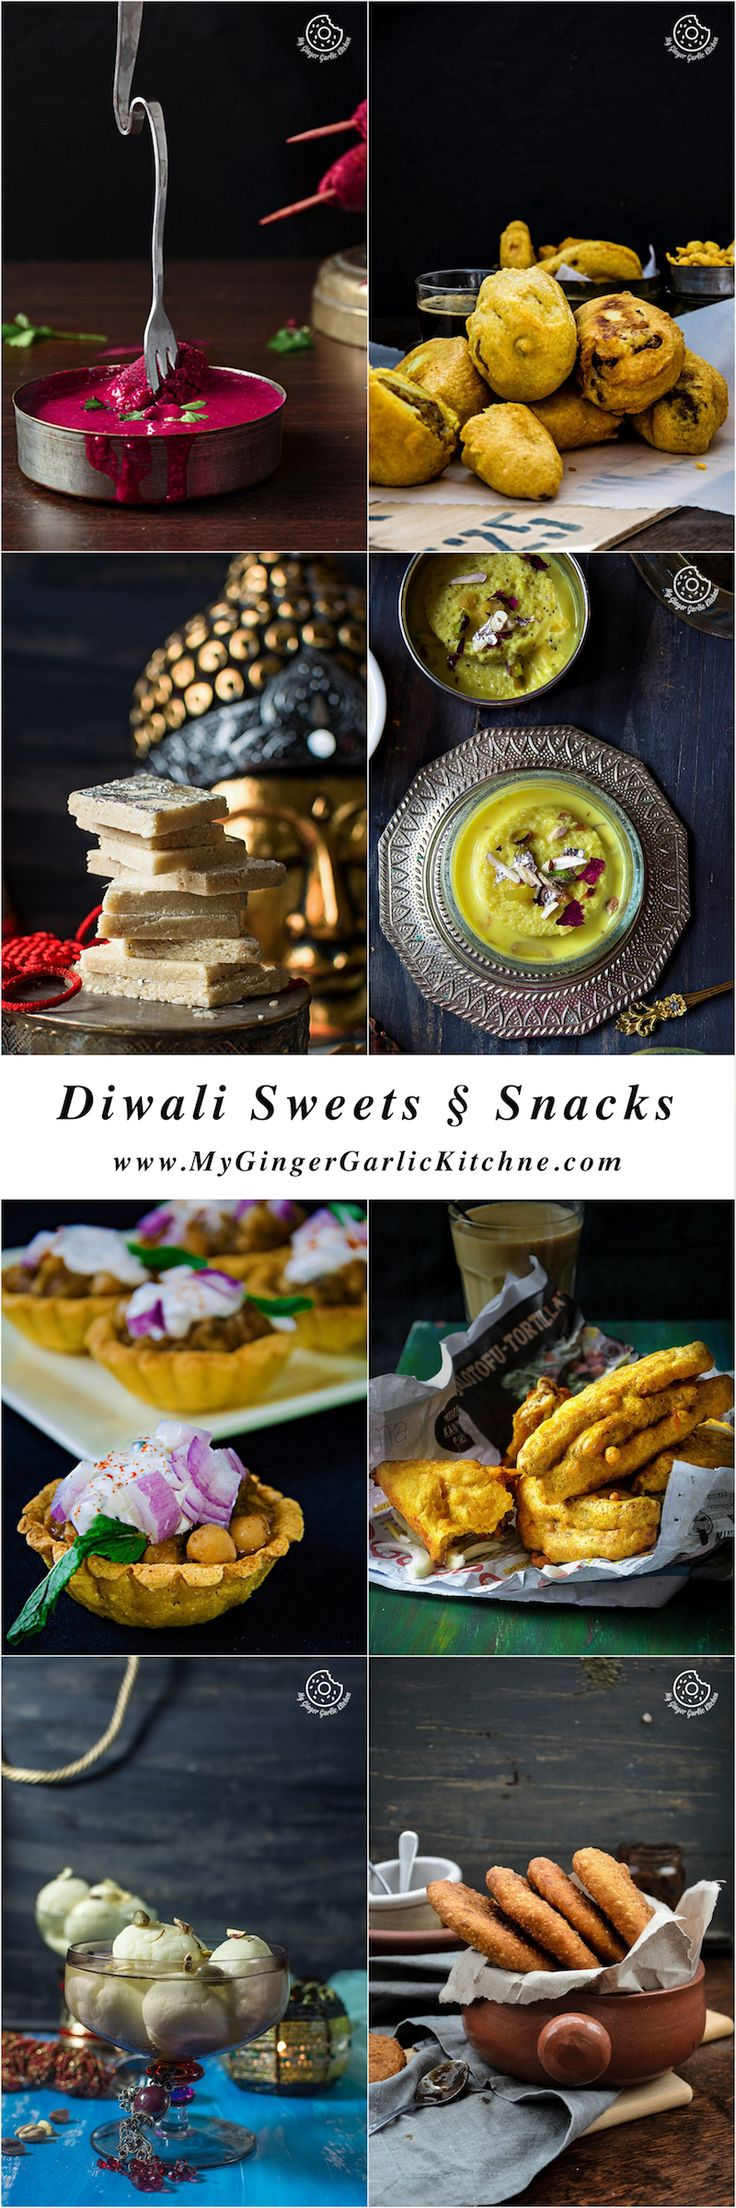 Diwali Sweets and Snacks Recipes | mygingergarlickitchen.com/ @anupama_dreams